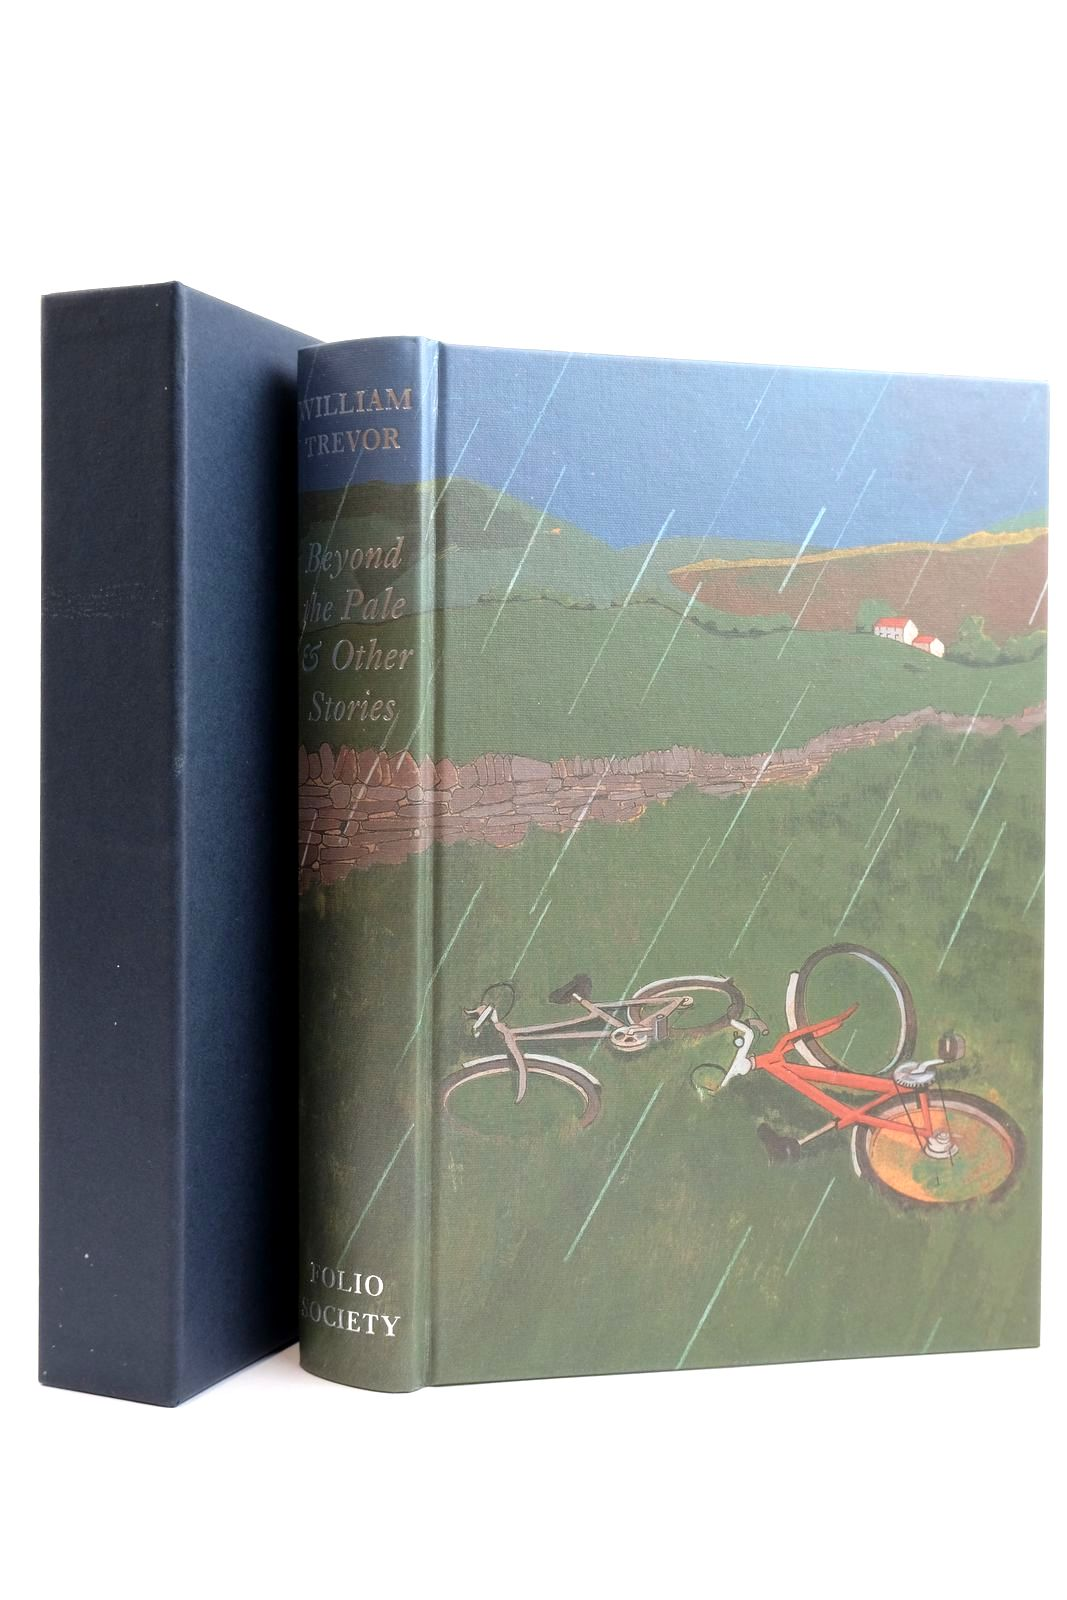 Photo of BEYOND THE PALE & OTHER STORIES written by Trevor, William illustrated by Hayes, Lyndon published by Folio Society (STOCK CODE: 2131871)  for sale by Stella & Rose's Books